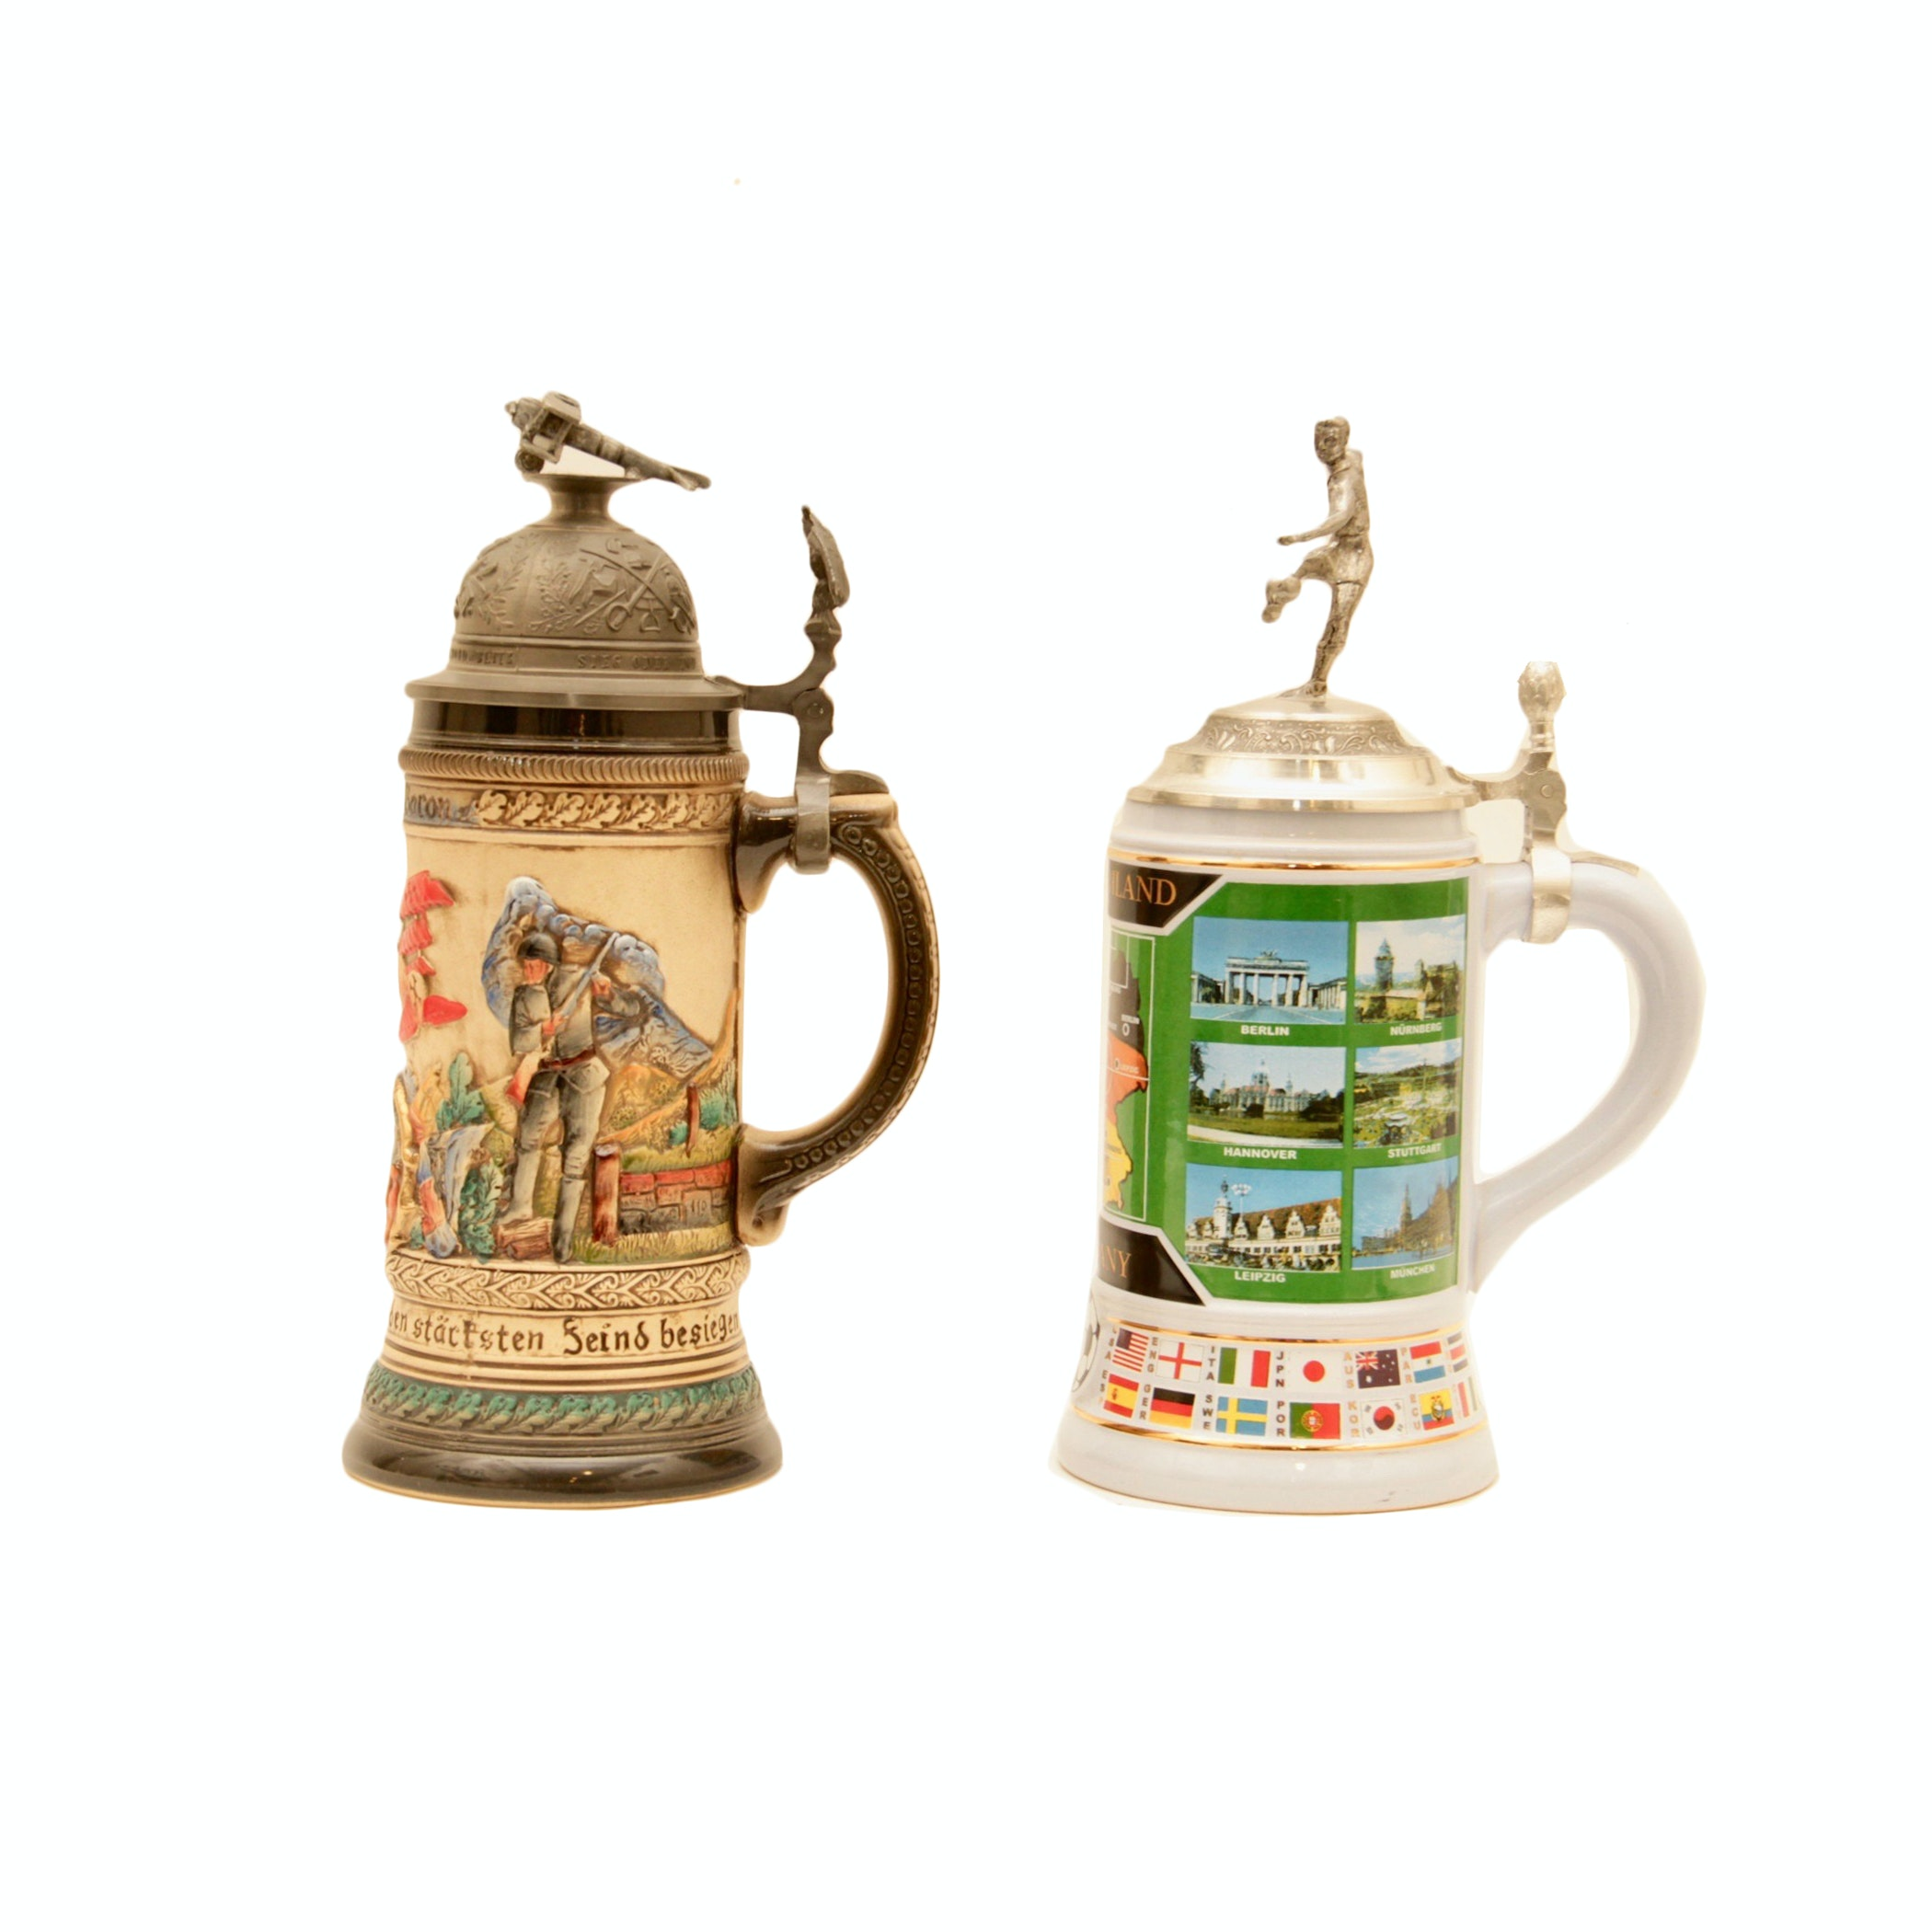 The Red Baron Limited Edition Beer Stein and One More